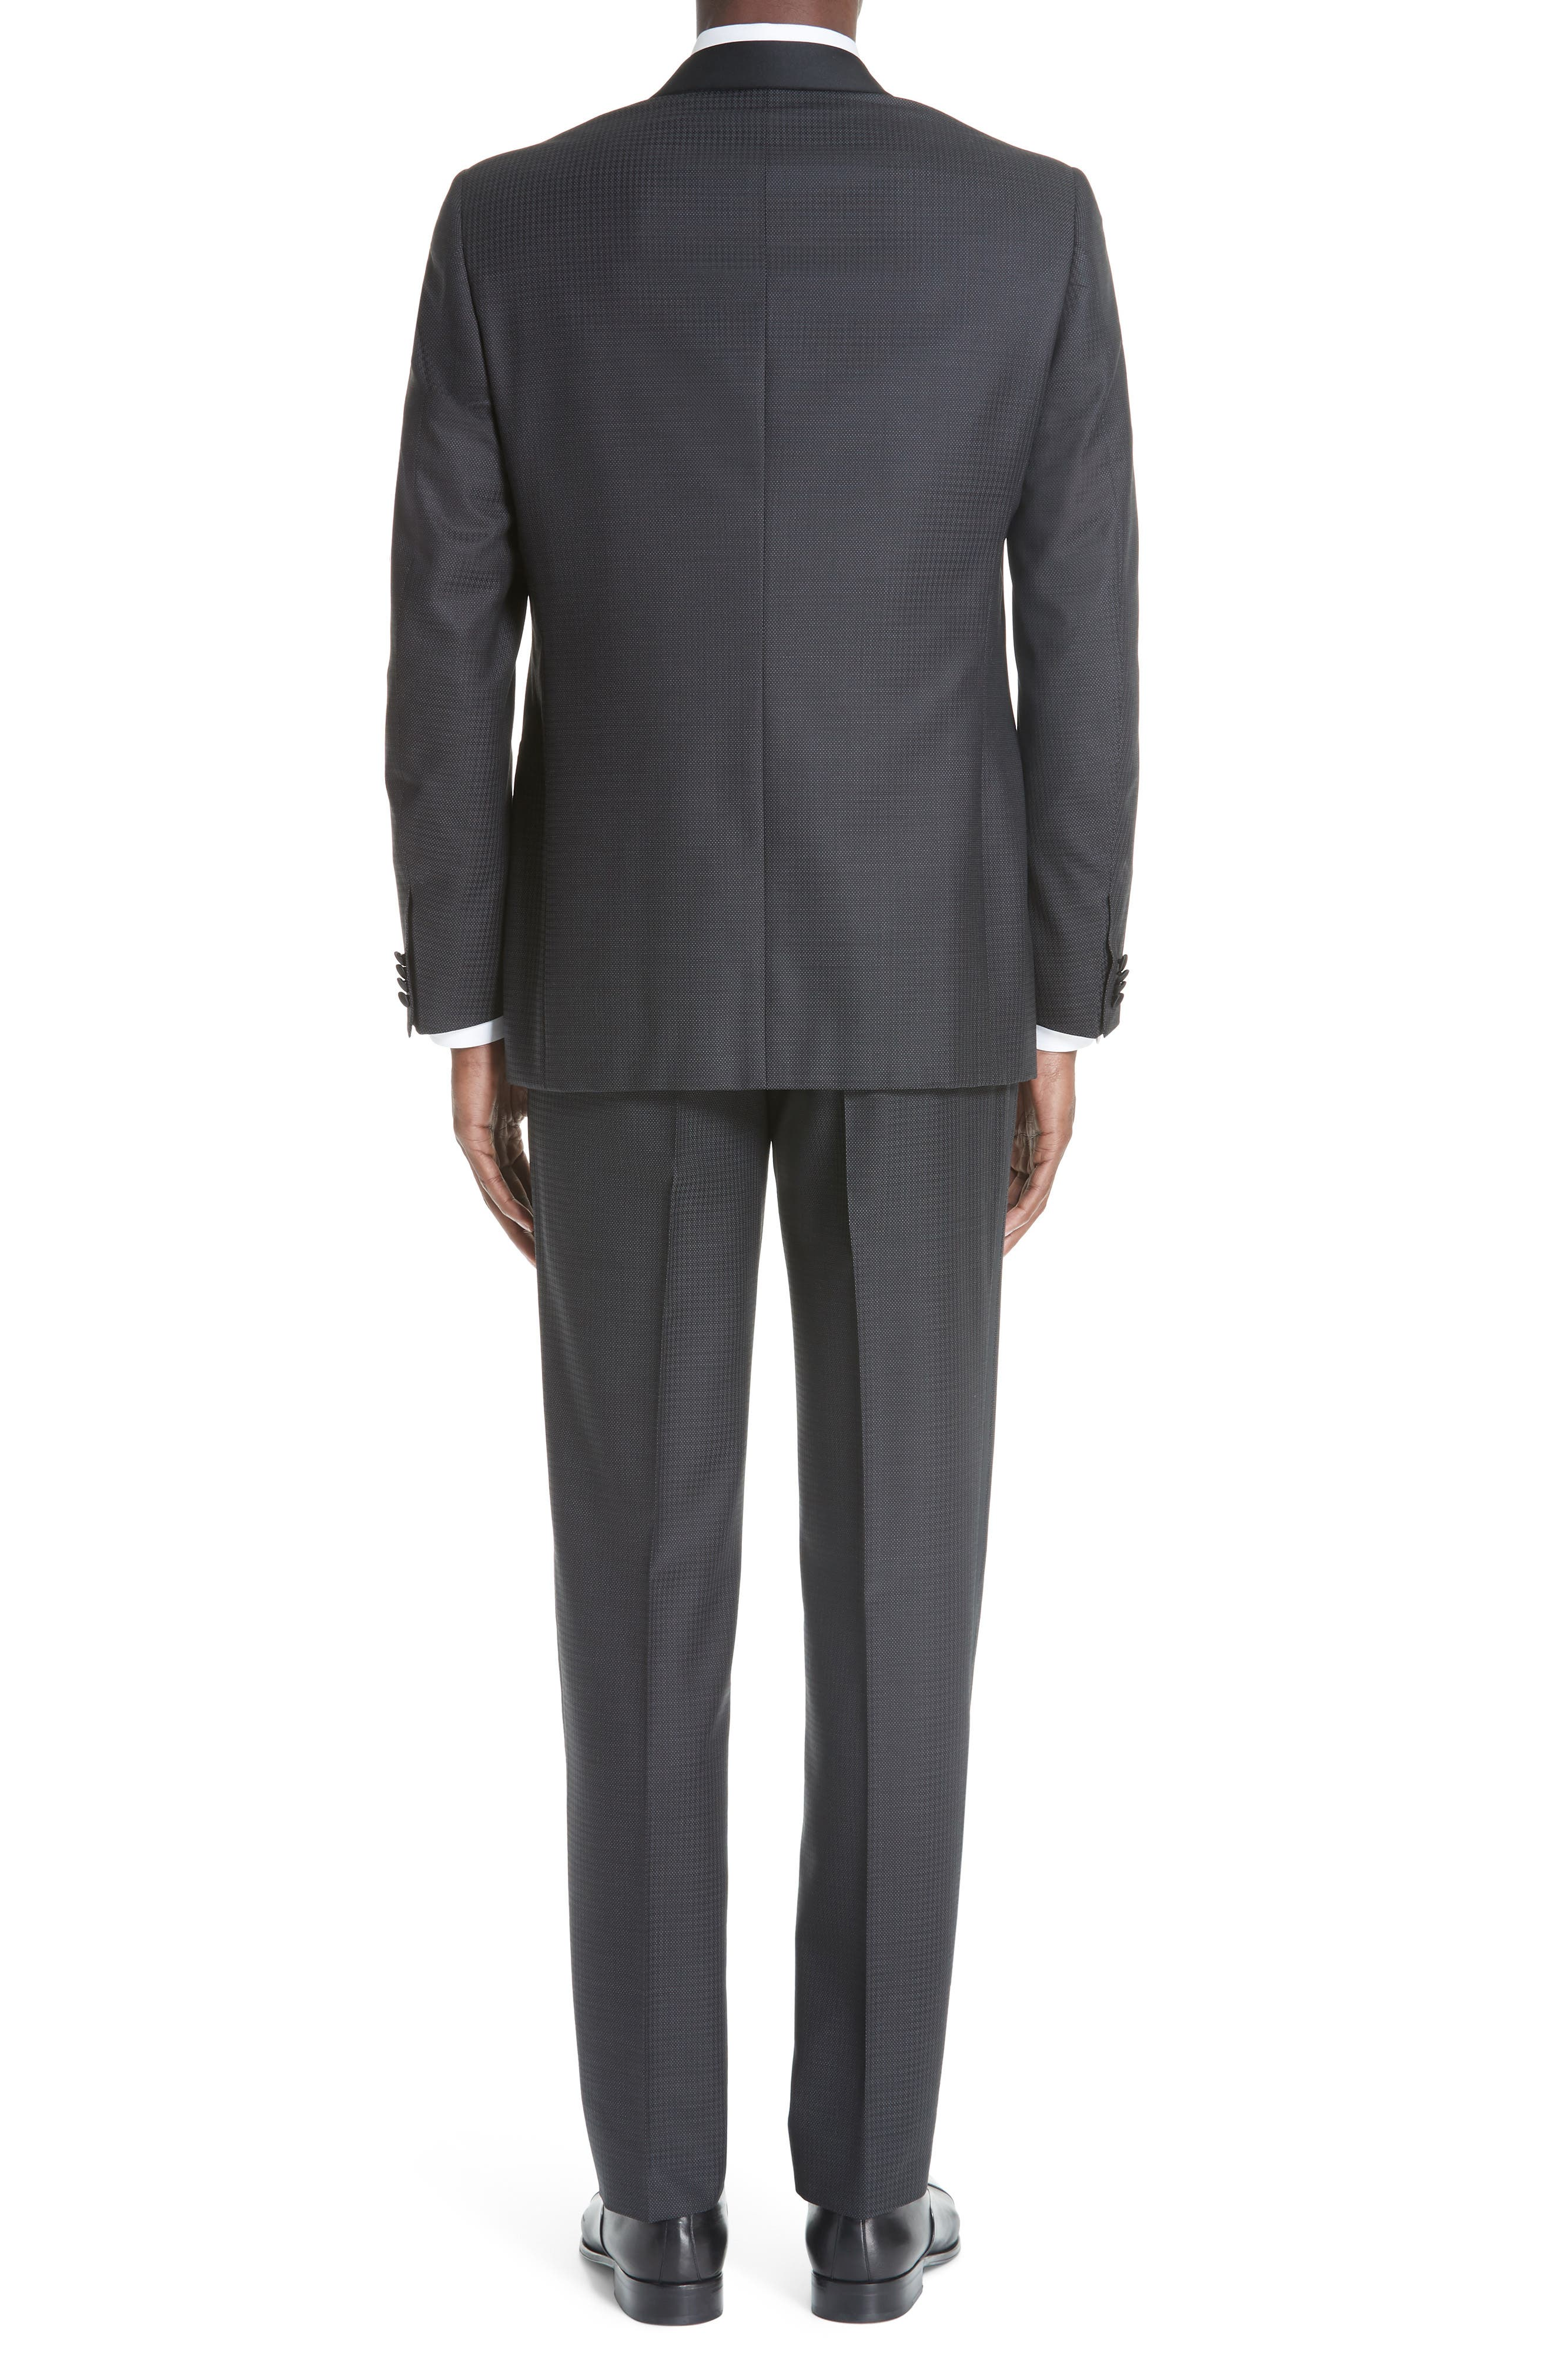 CANALI, Classic Fit Wool Tuxedo, Alternate thumbnail 2, color, CHARCOAL